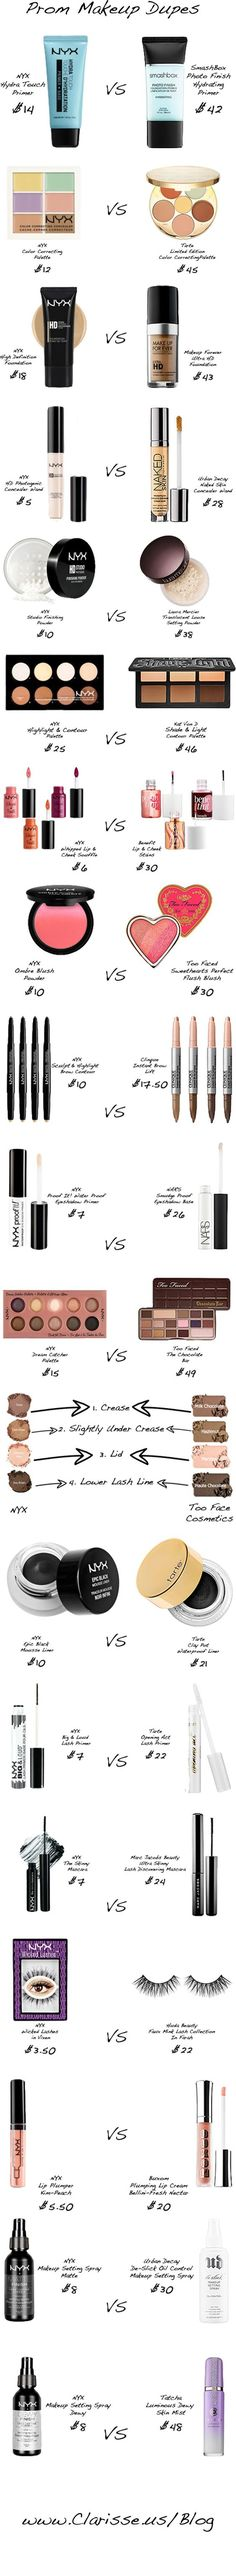 Prom Makeup Dupes Splurge vs Steal-Well, beauties, it�s that time we have all been waiting for Prom is ALMOST here for some and already…